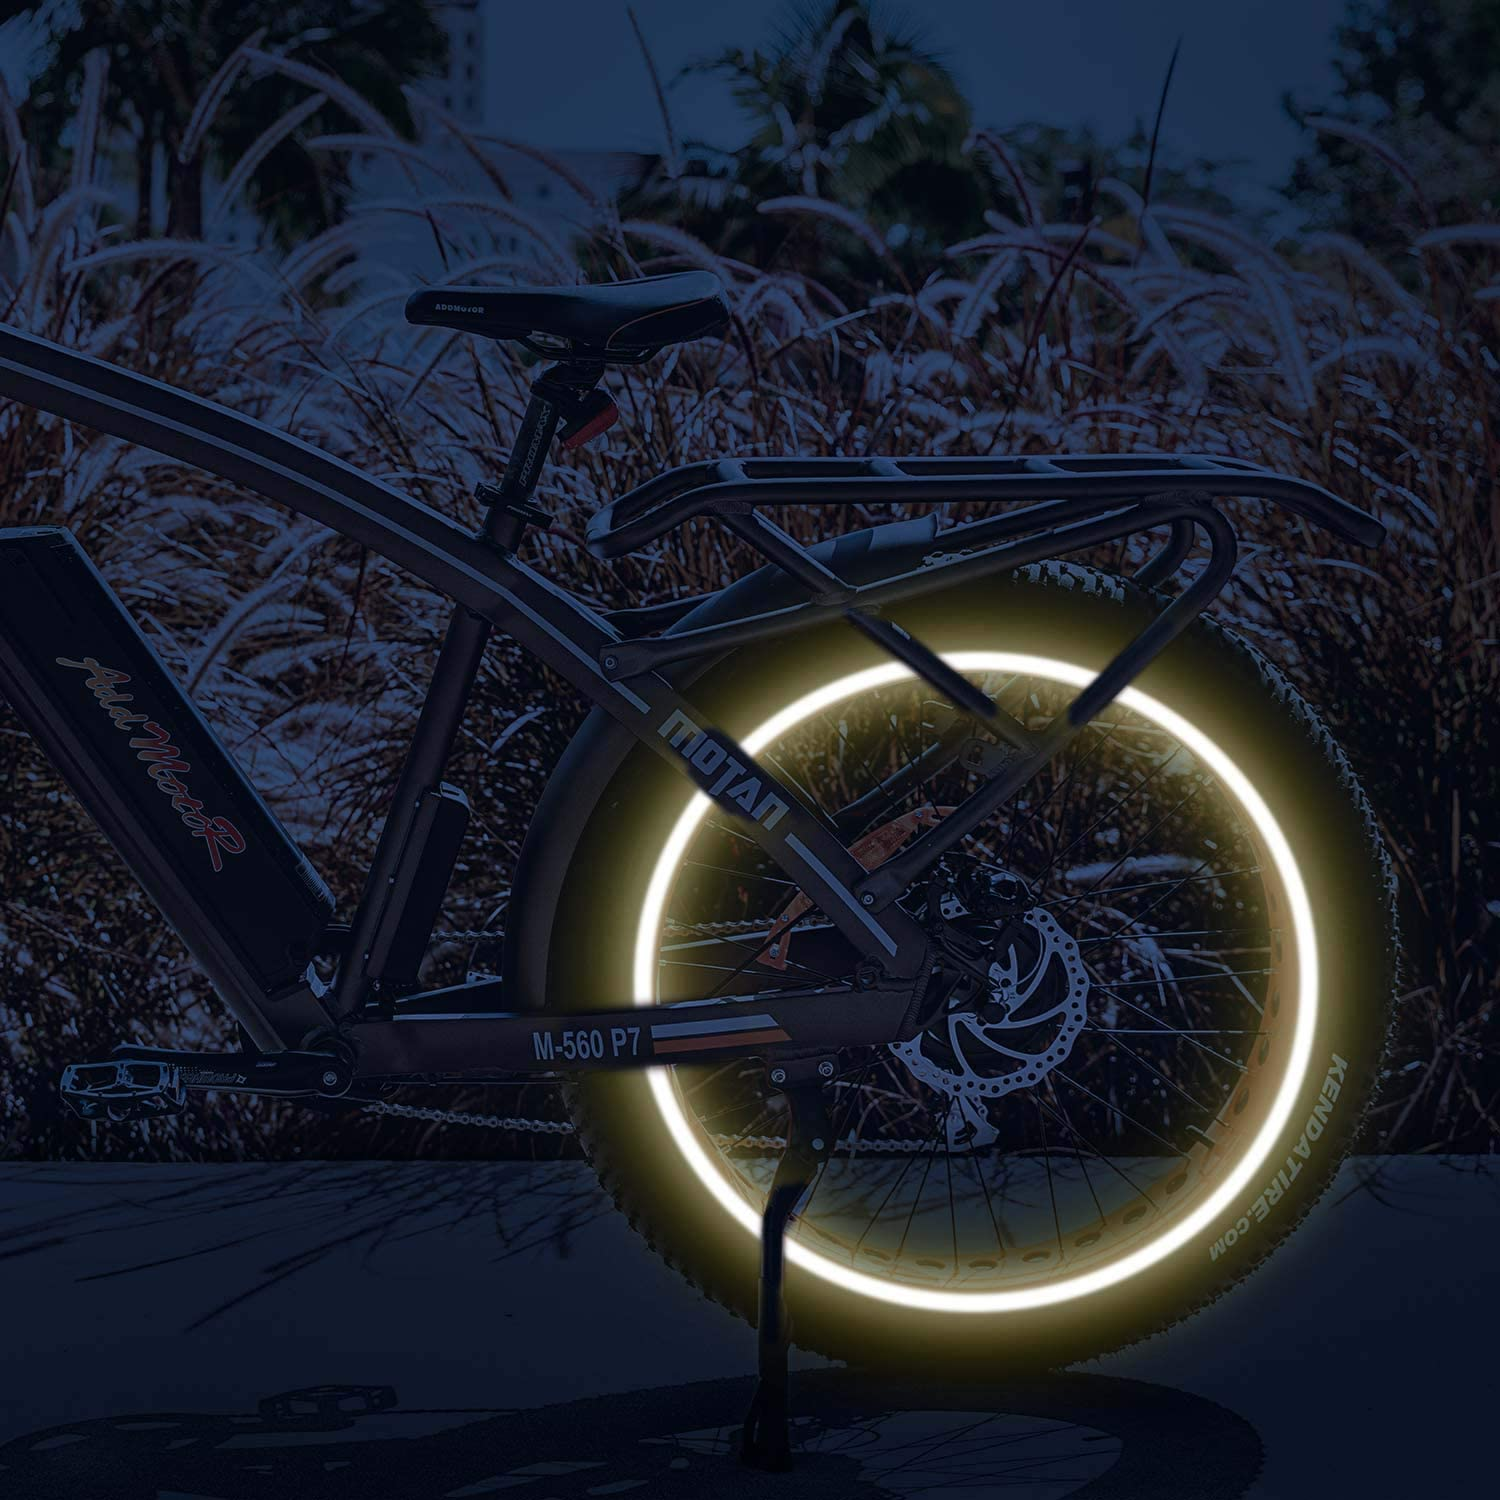 Addmotor Bike Wheel Rim Stickers Stripes 3M Reflective Decals Tape Reflector for Bicycle Motorcycle Decoration